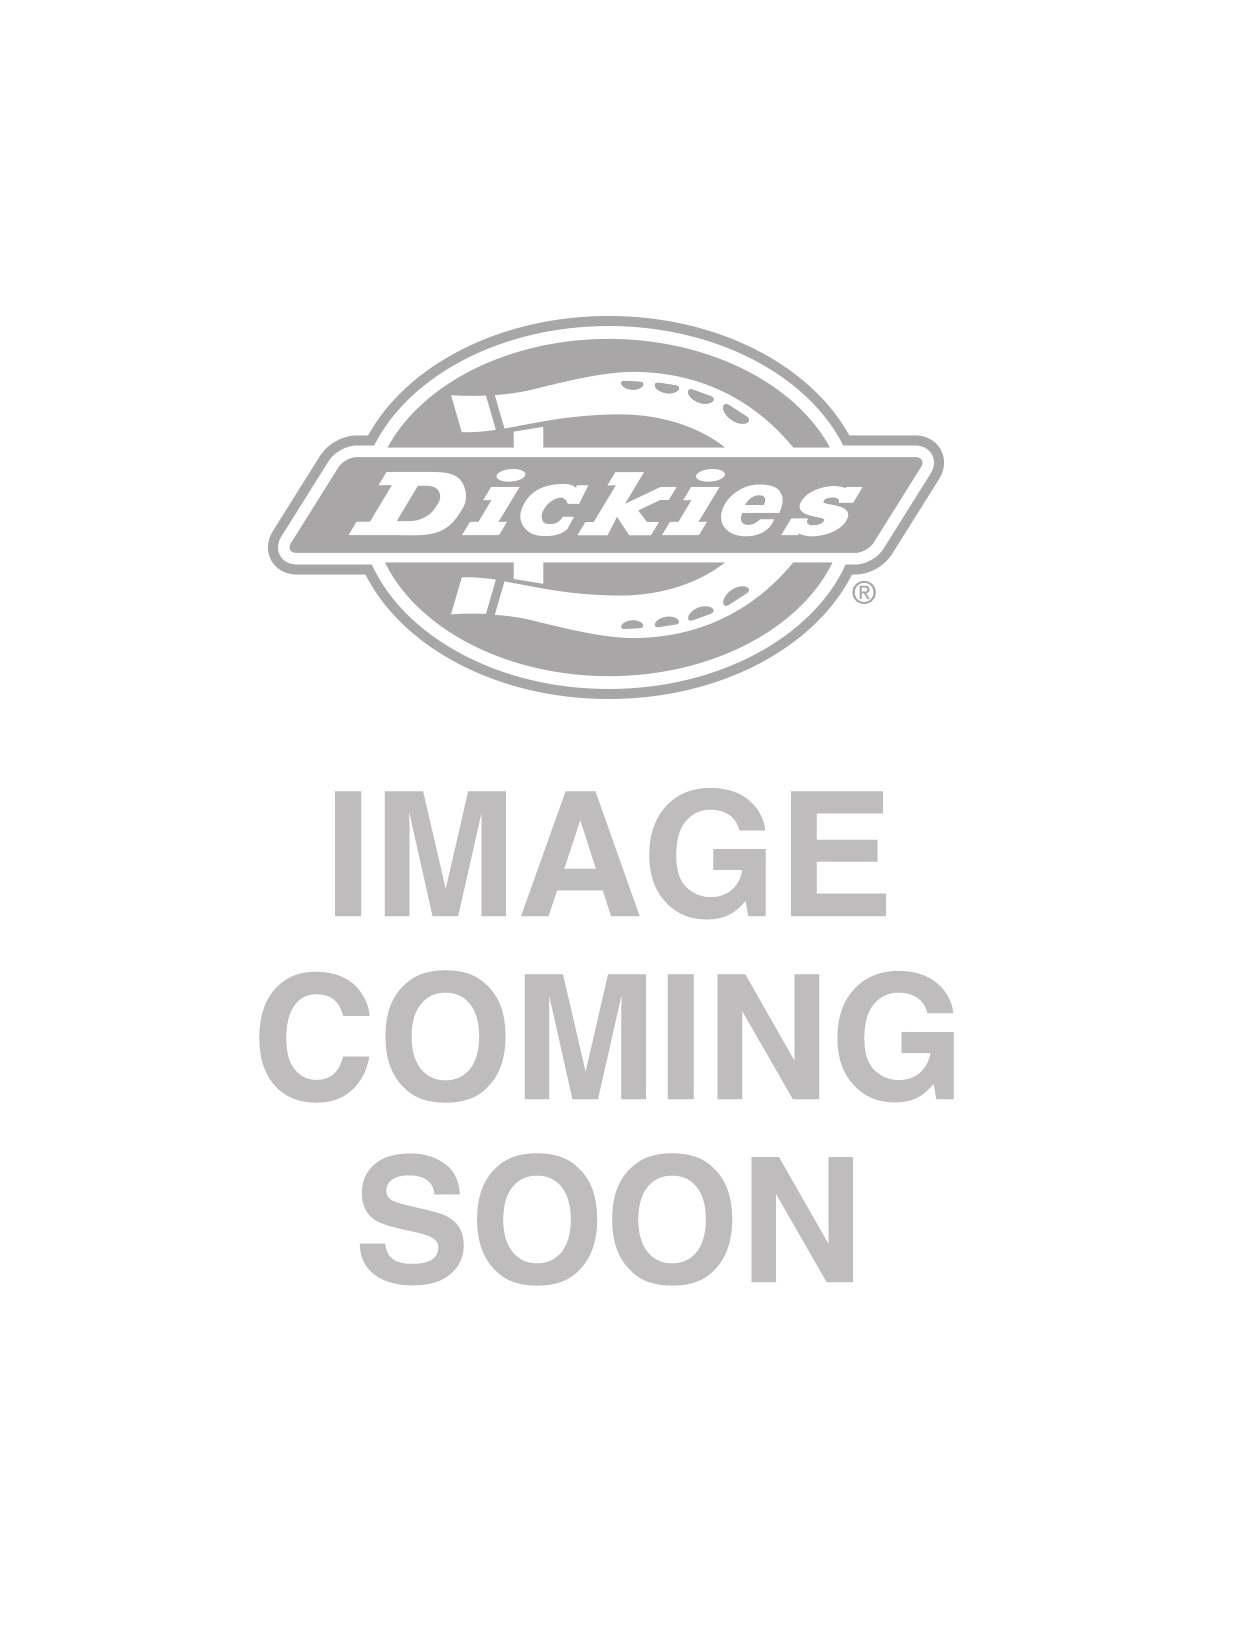 Dickies Womens Benham Sweatshirt Dress